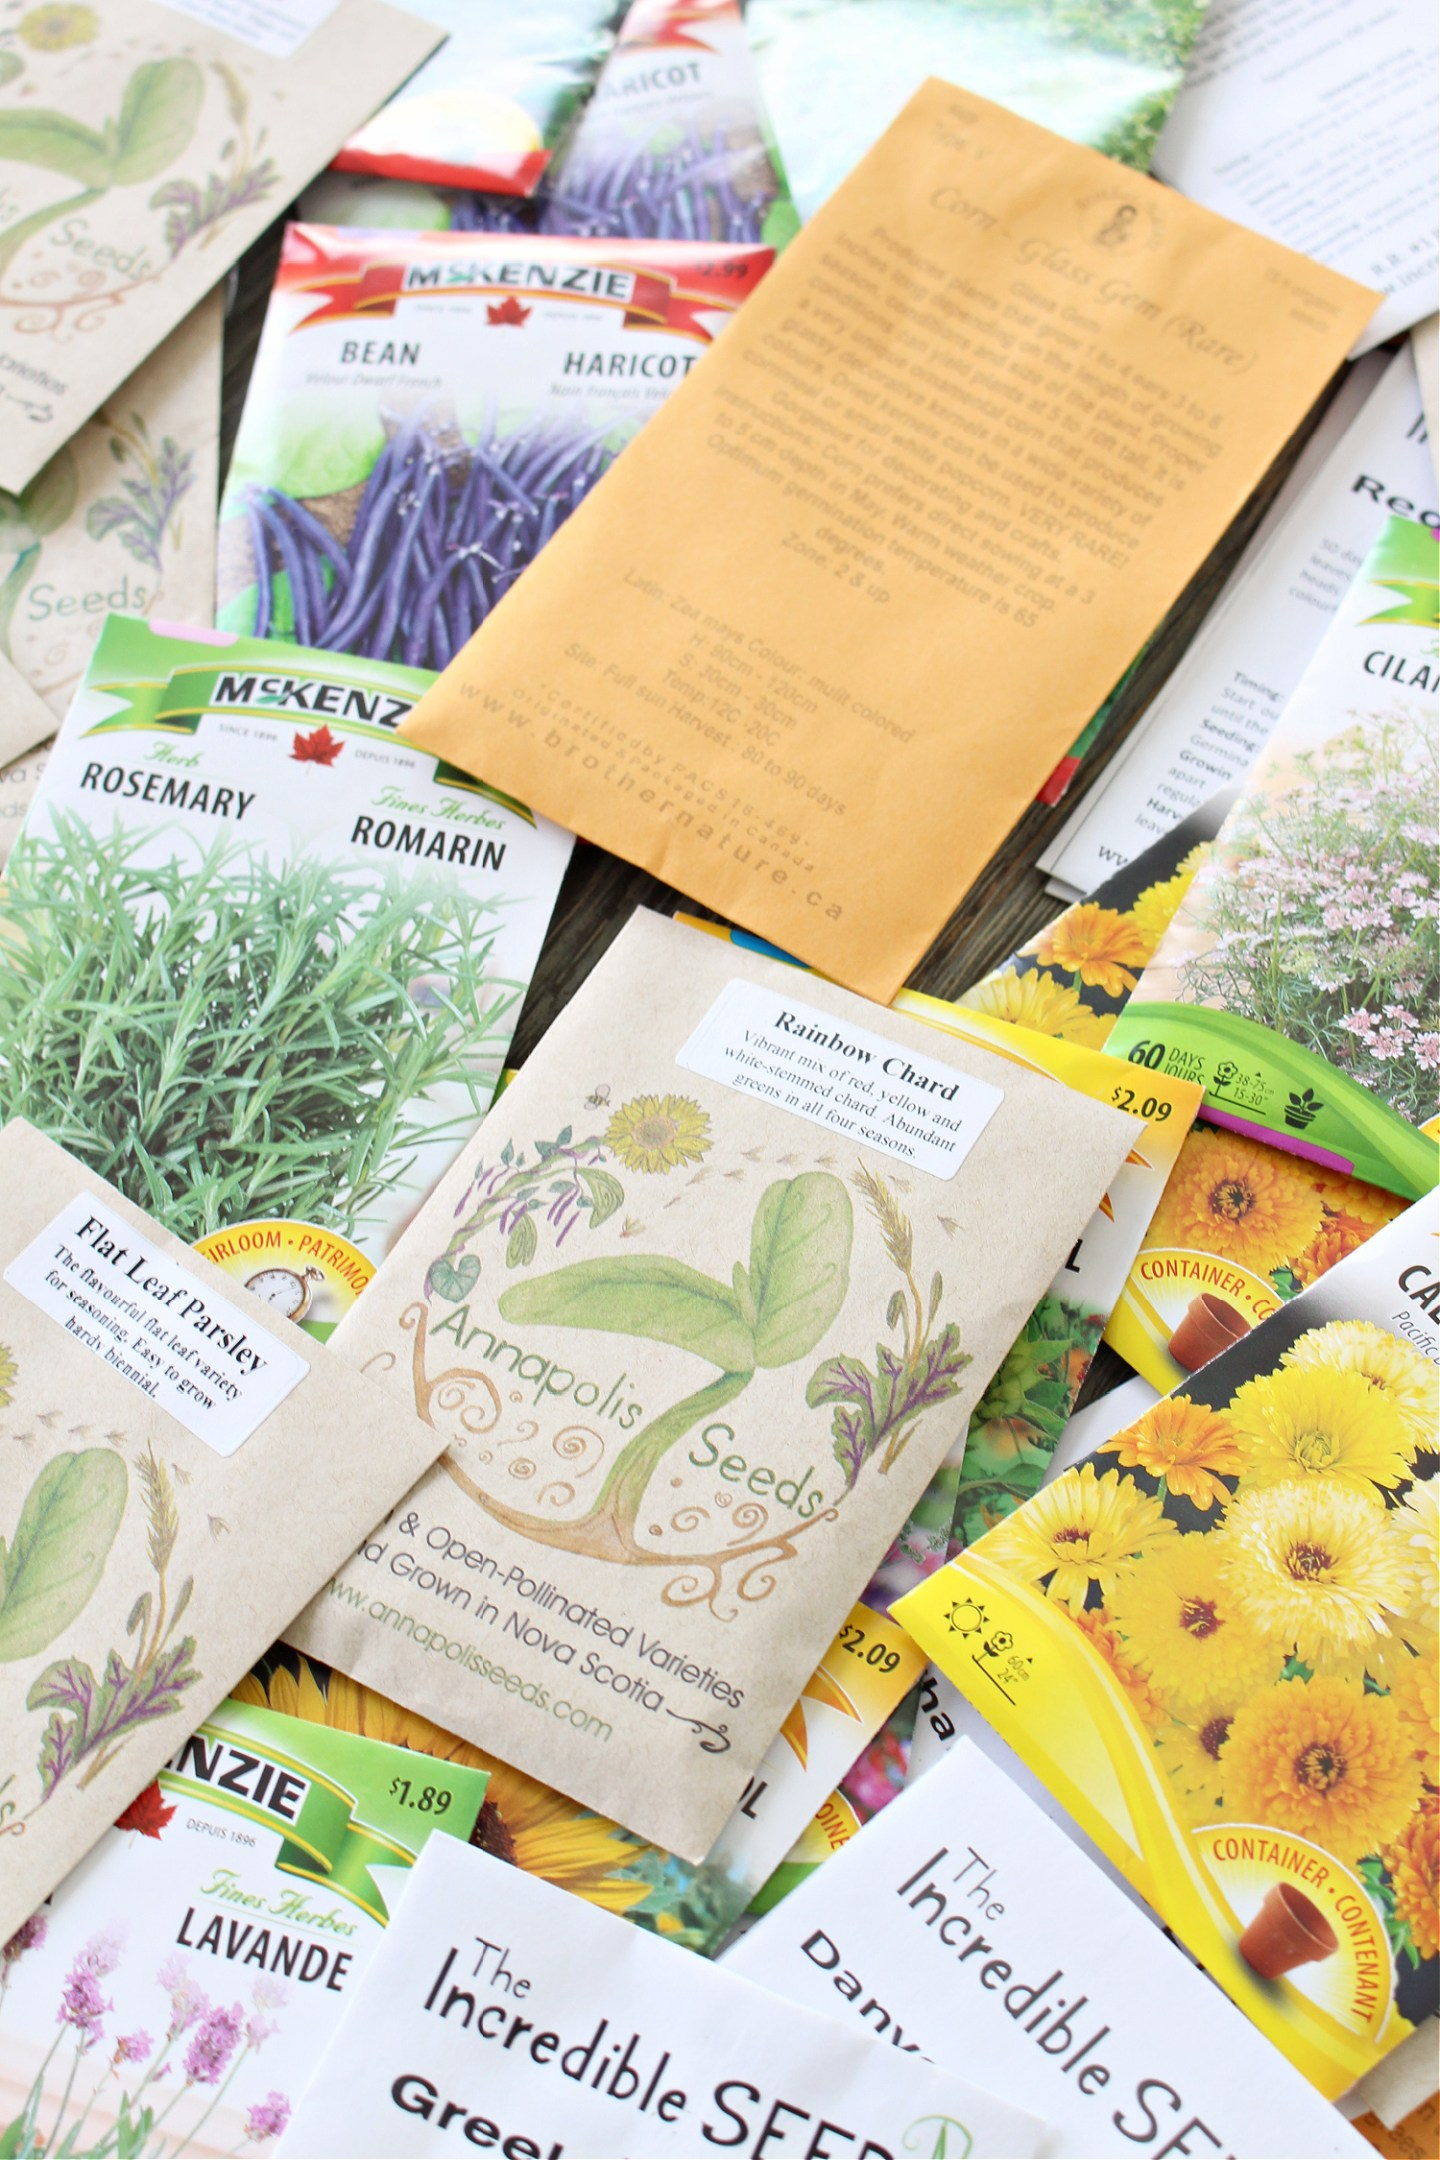 Where to Buy Seeds in Canada